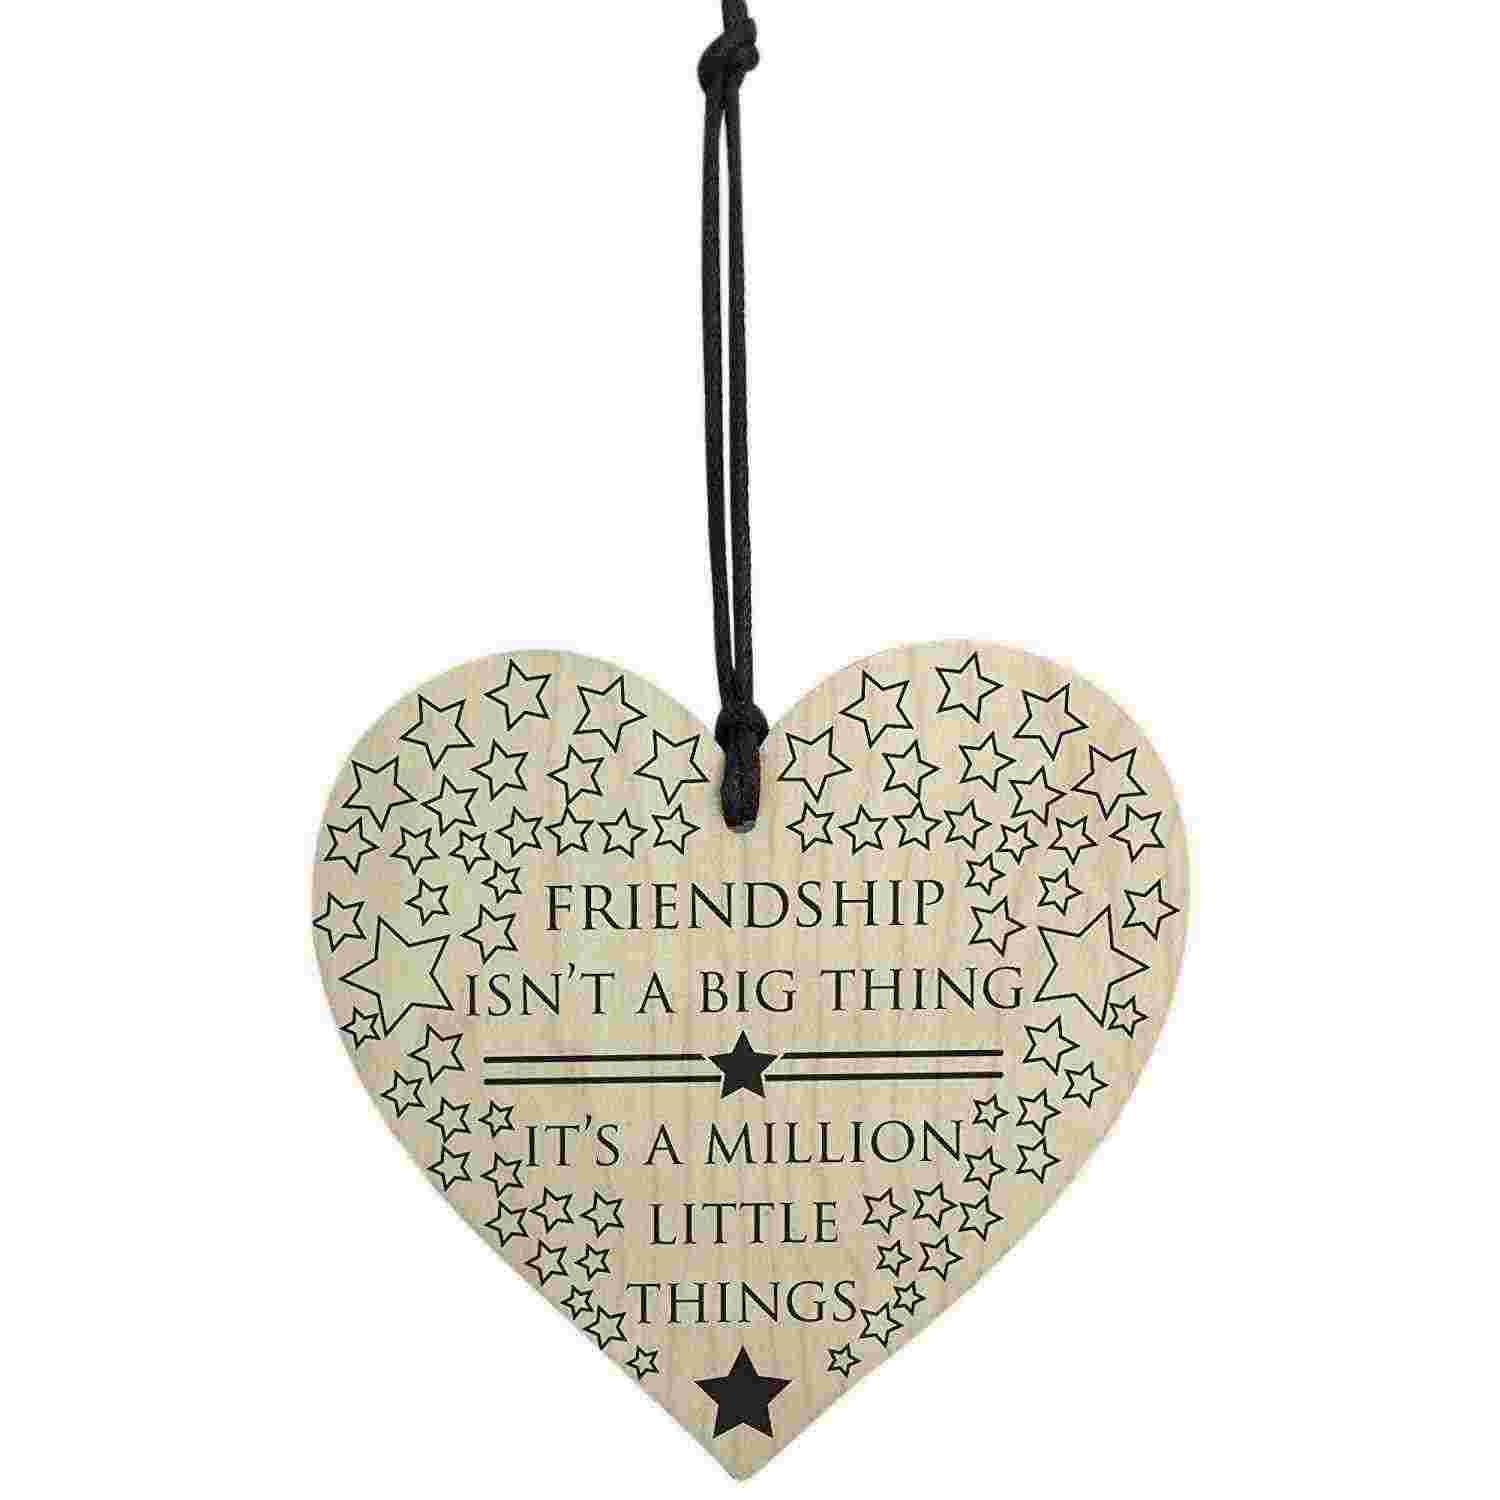 HOT SALE Friendship Is A Million Little Things Wooden Hanging Heart Friends Love Plaque